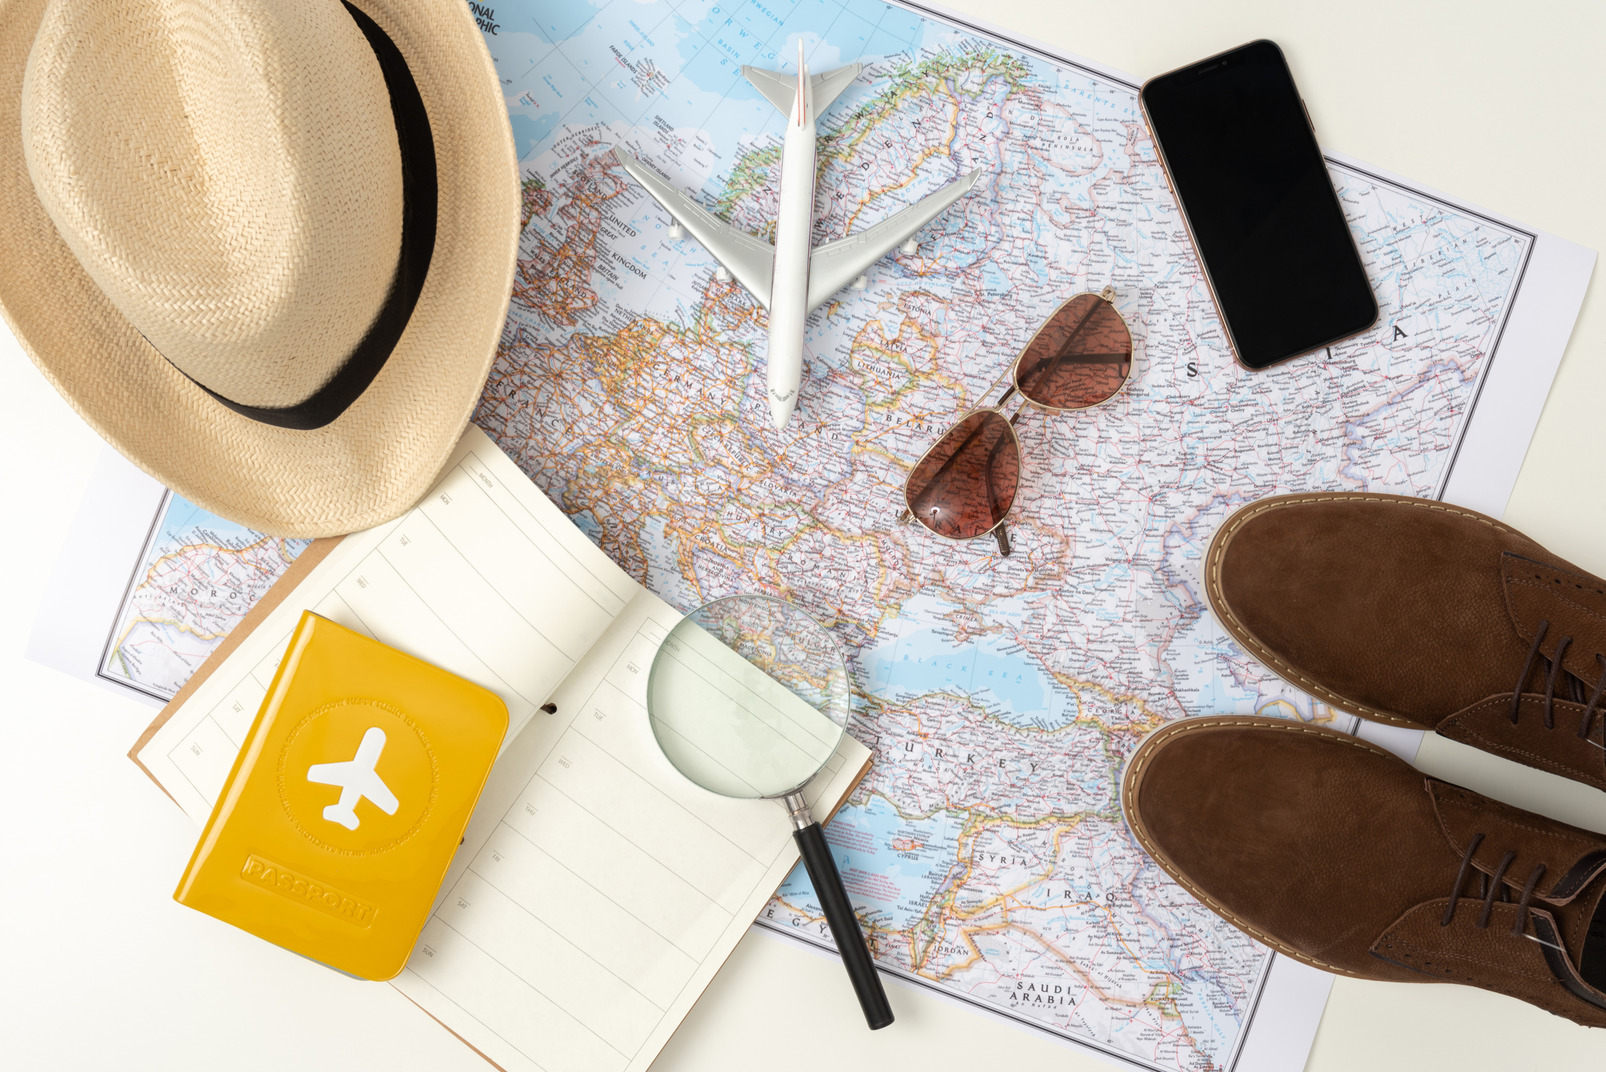 Your standard travel kit (don't forget the plain!), with the straw hat, comfortable boots, smartphone and sunglasses